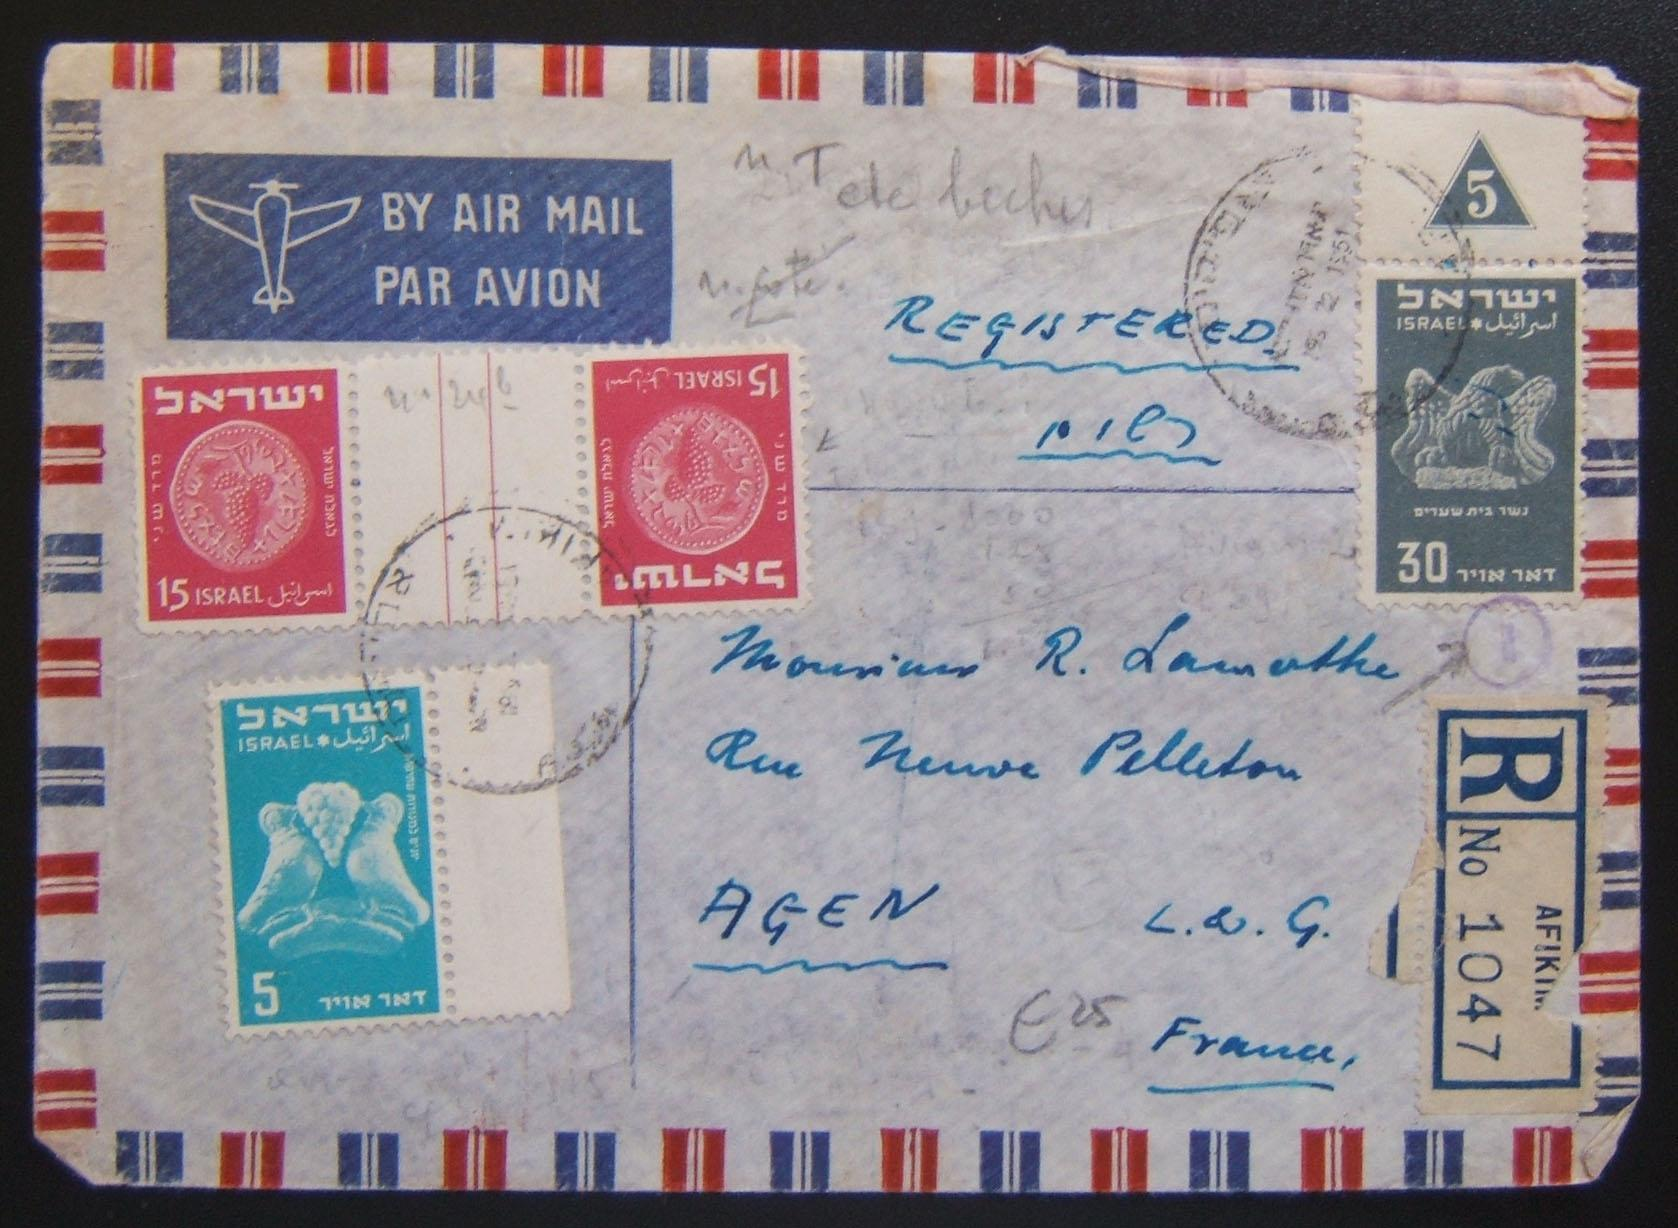 1951 mixed franking reg. airmail: 19-2-1951 reg. comm a/m cv ex AFIKIM to FRANCE franked 65pr per FA-2a period rate (40pr letter + 25pr reg fee) using mix of 1949 2nd Coinage 15pr